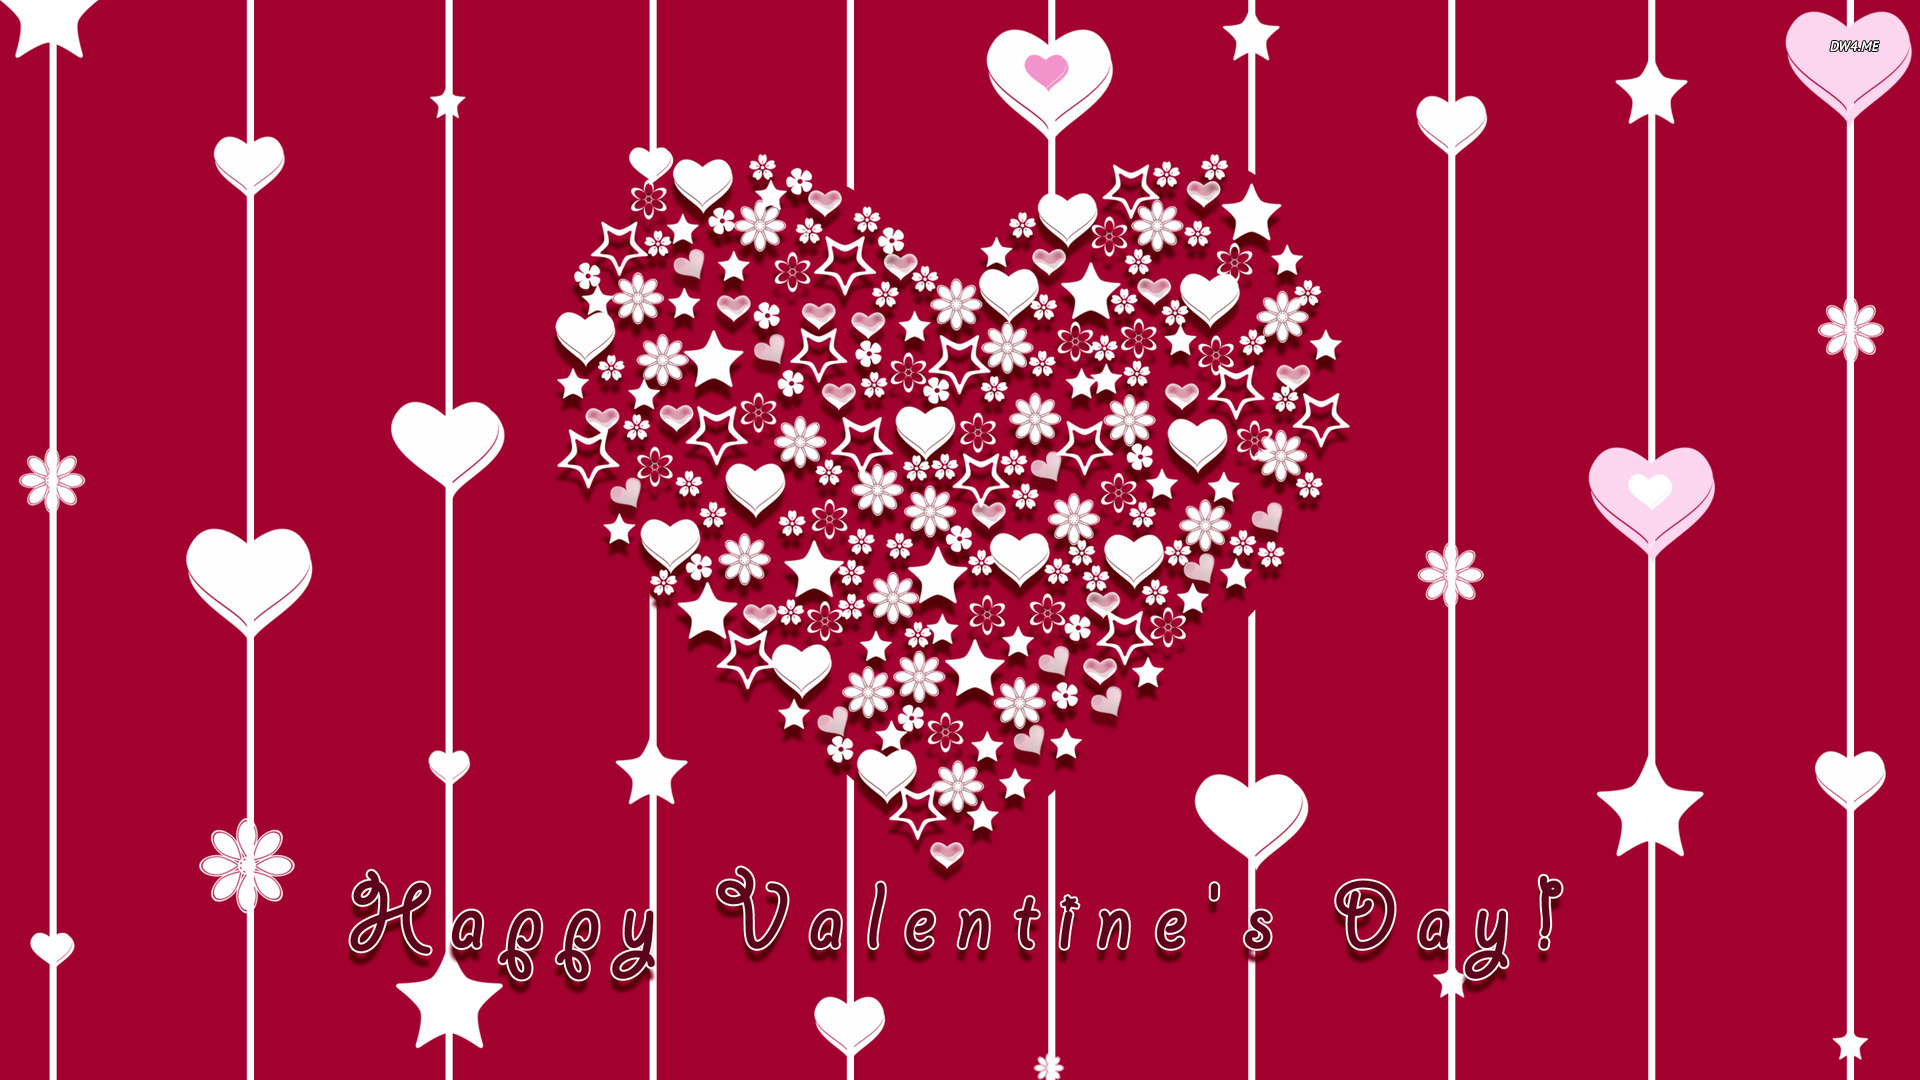 Happy Valentines Day Wallpapers free